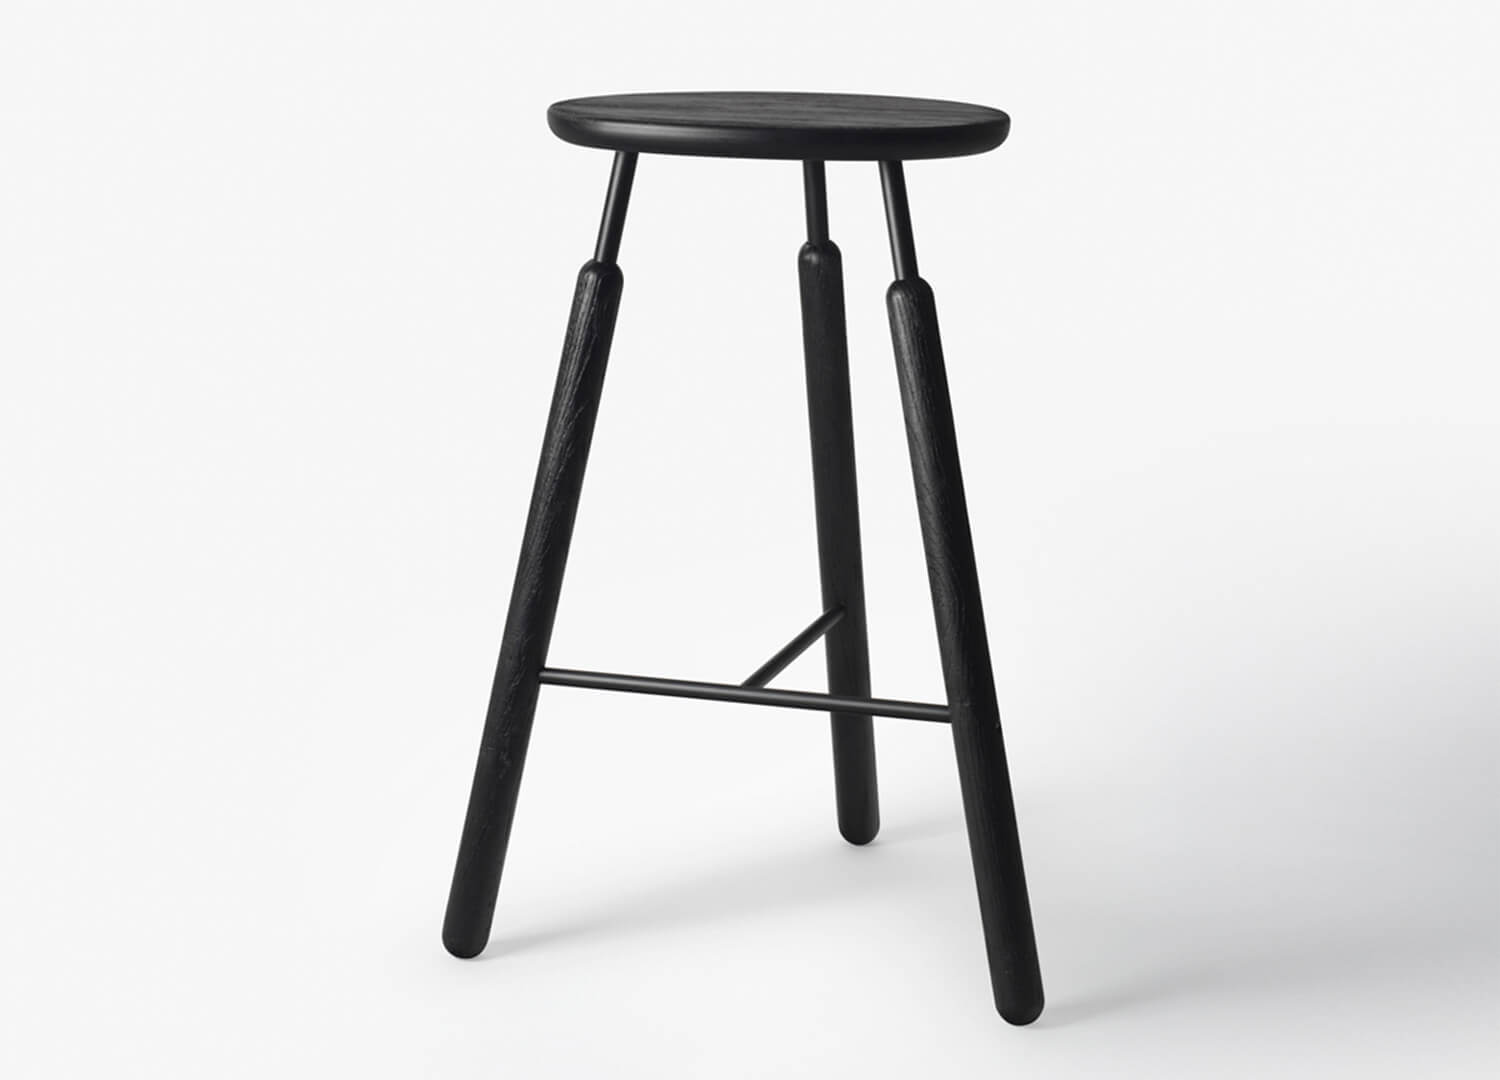 est living design covet raft stool norm architecture black